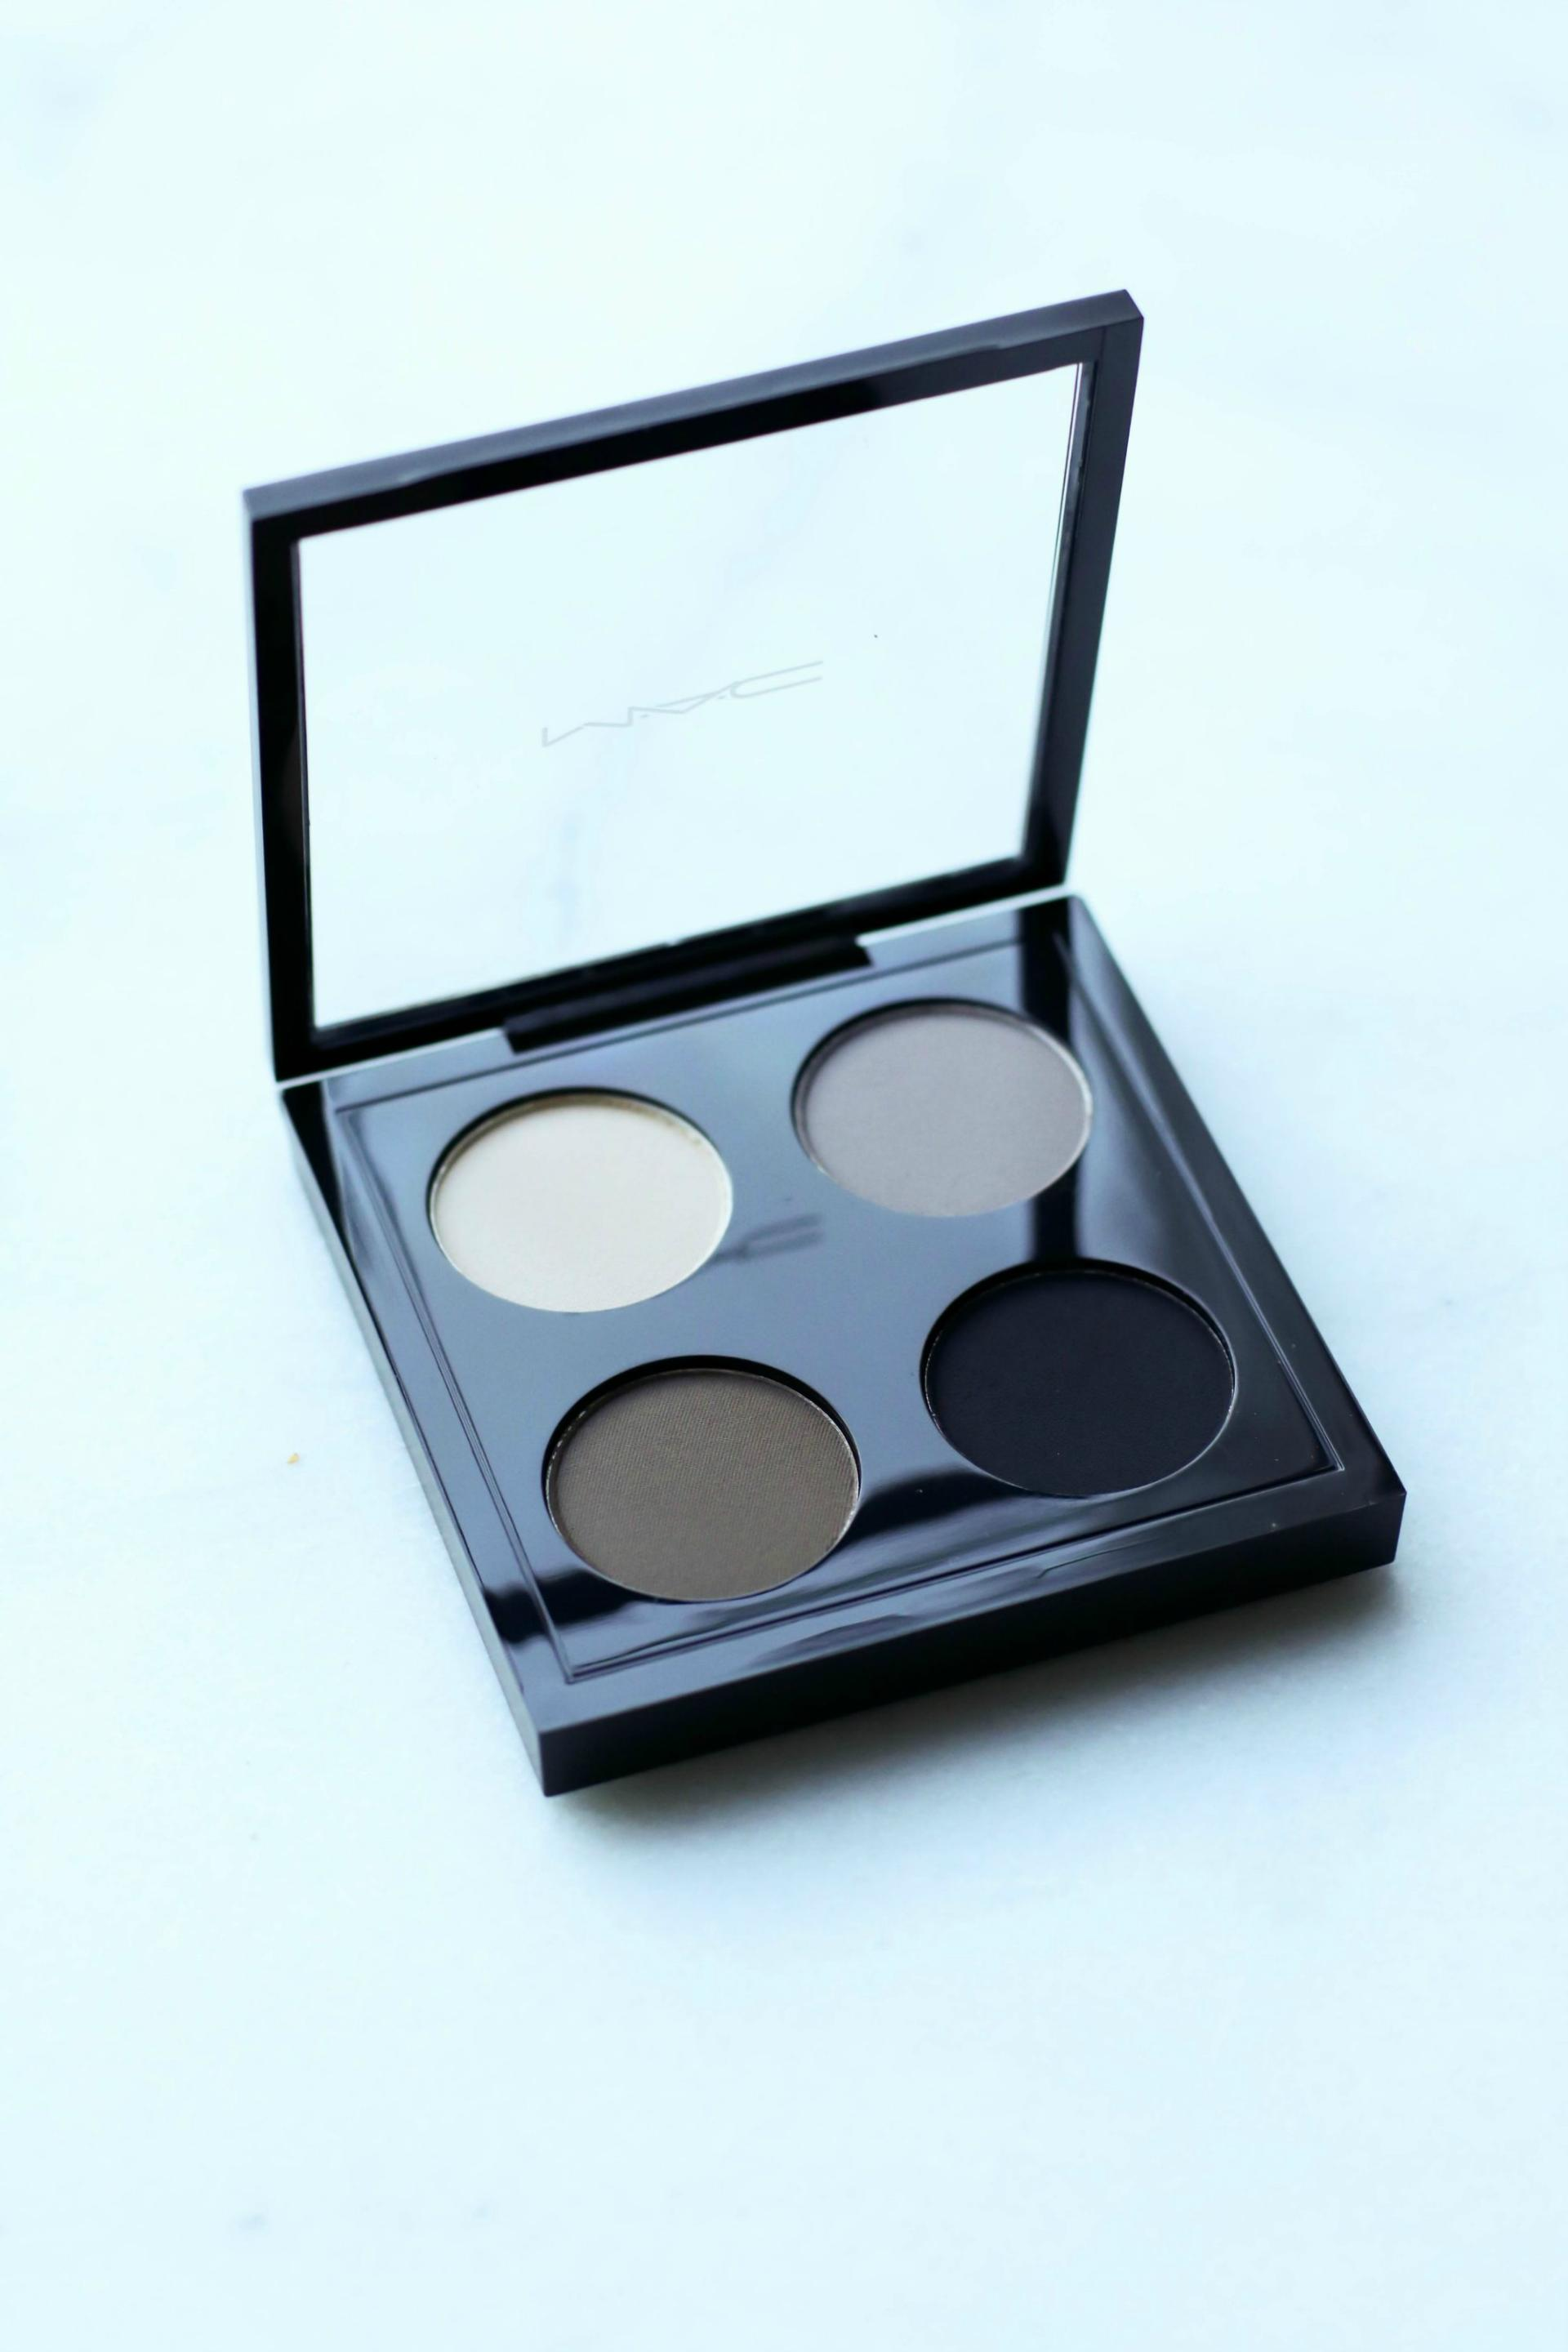 MAC Cosmetics Limited Edition Photographs By Helmut Newton